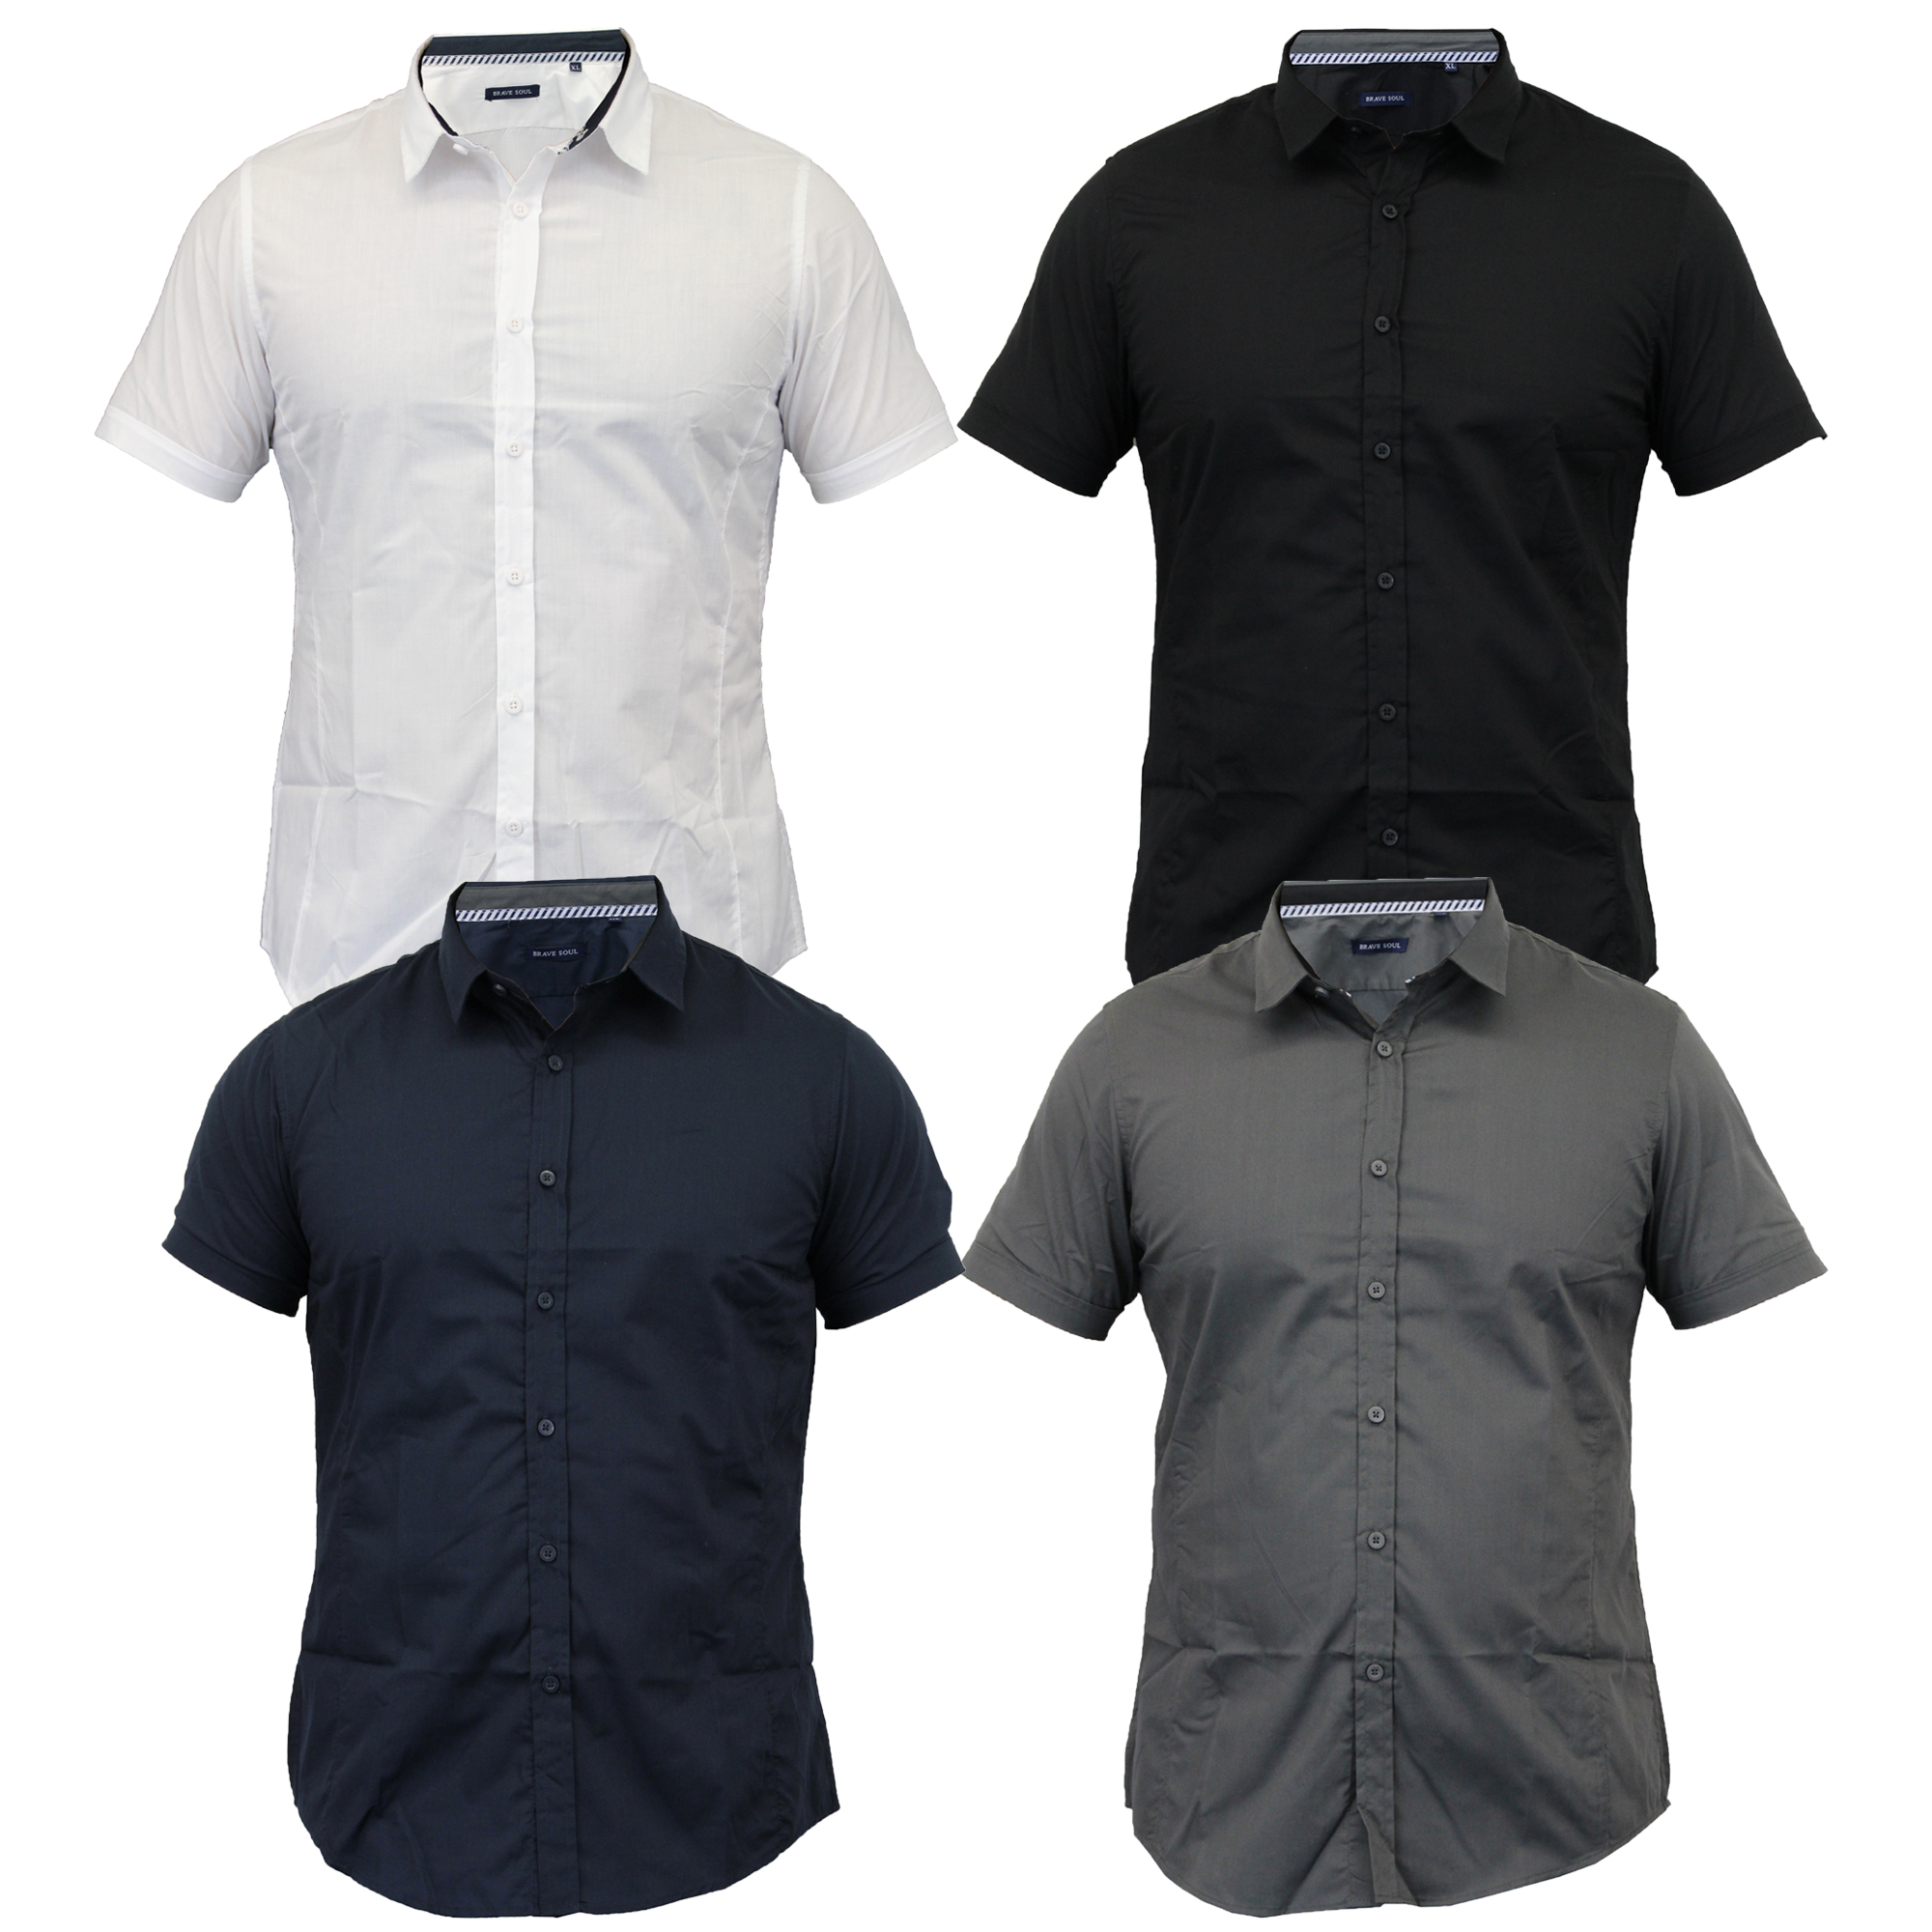 Mens-Shirts-Brave-Soul-Short-Sleeved-Slim-Fit-Mombassa-Plain-Collared-Summer-New thumbnail 4